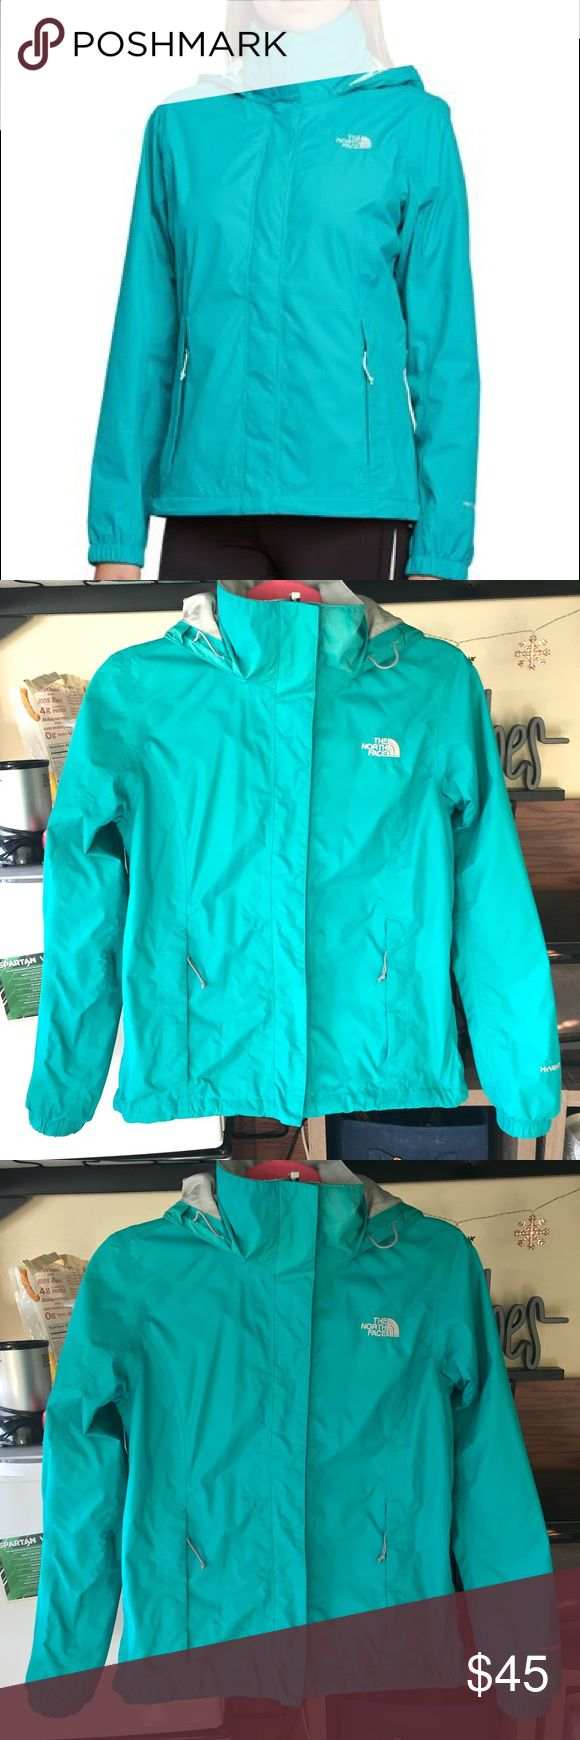 The North Face Resolve Jacket teal jacket. water resistant and great for fall/spring weather. I love this jacket, just ready for a new color! Great condition. The North Face Jackets & Coats